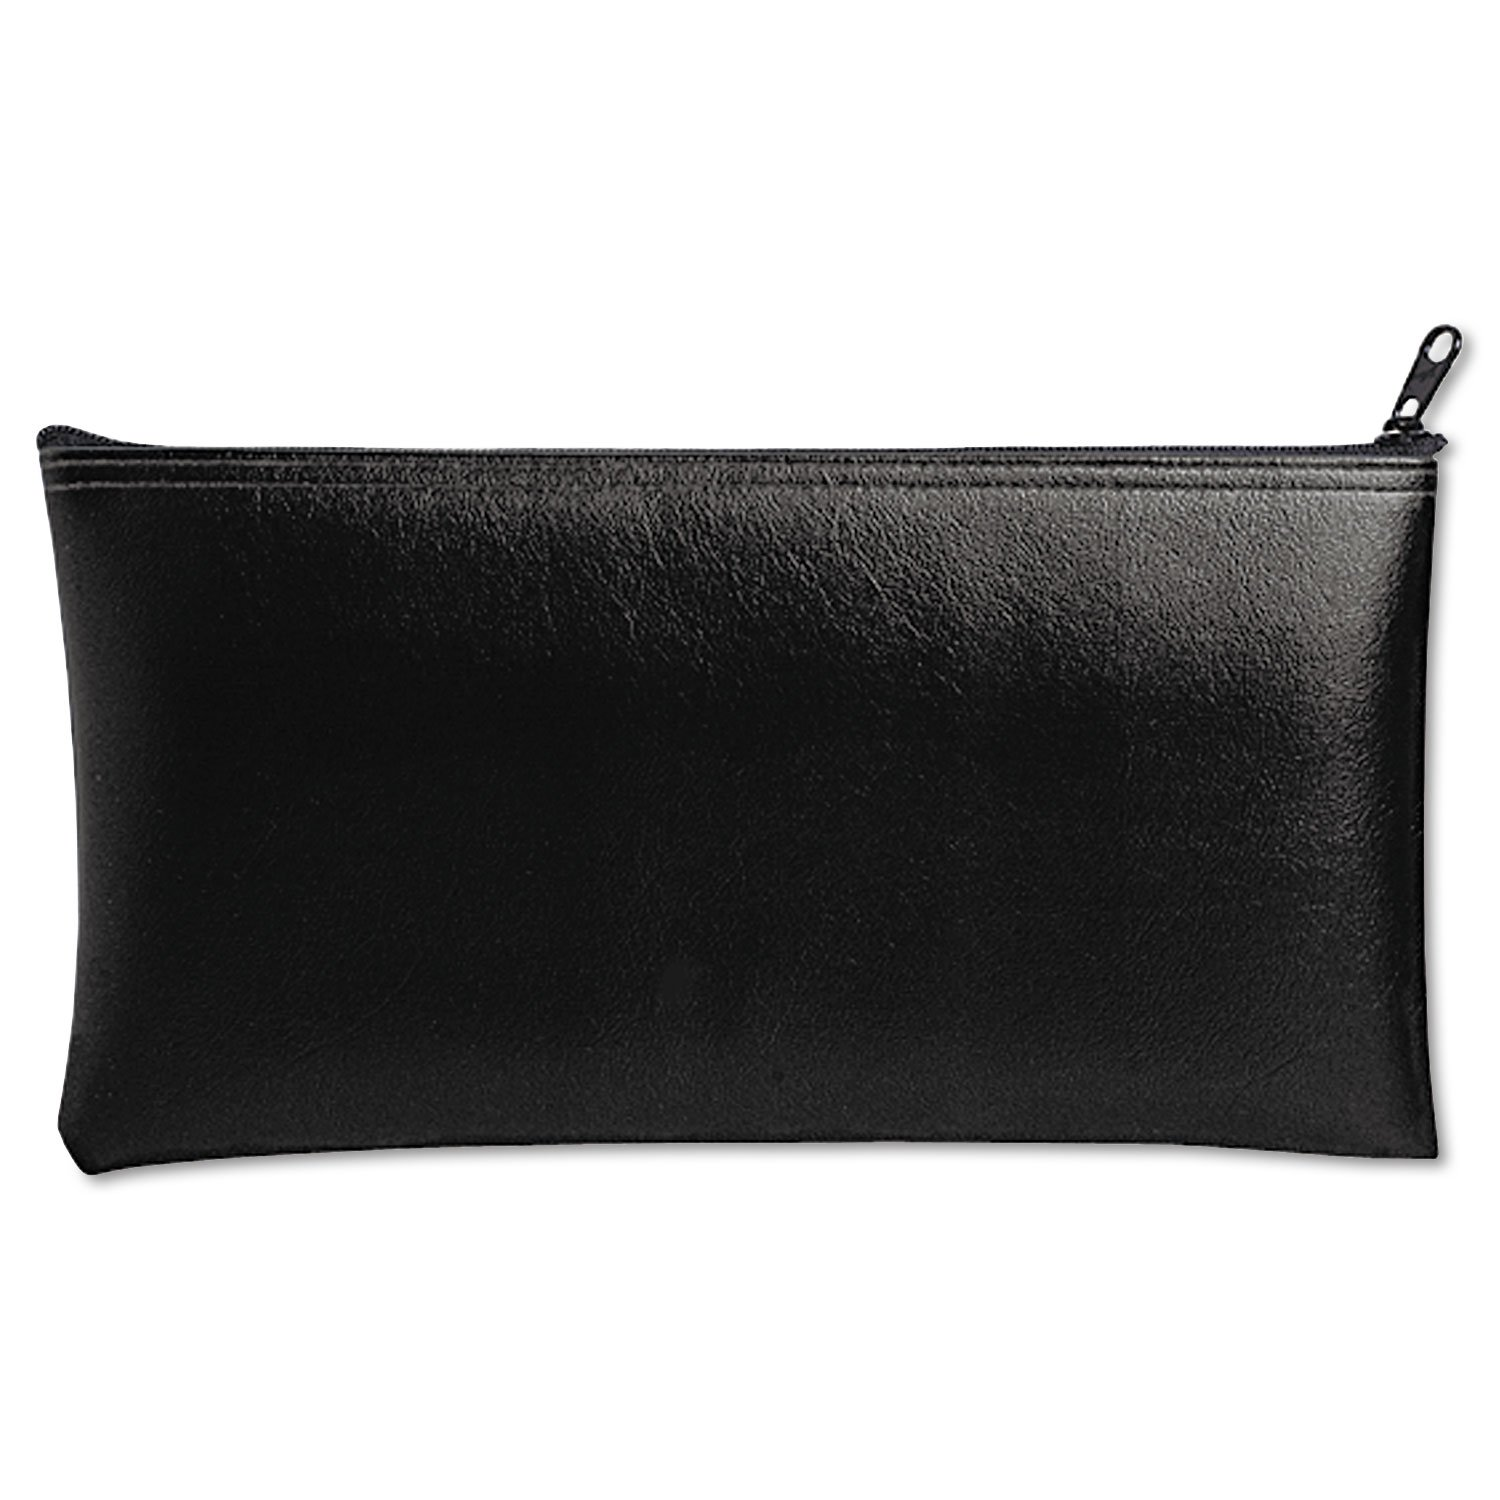 MMF Industries 2340416W04 Leatherette Zippered Wallet, Leather-Like Vinyl, 11w x 6h, Black